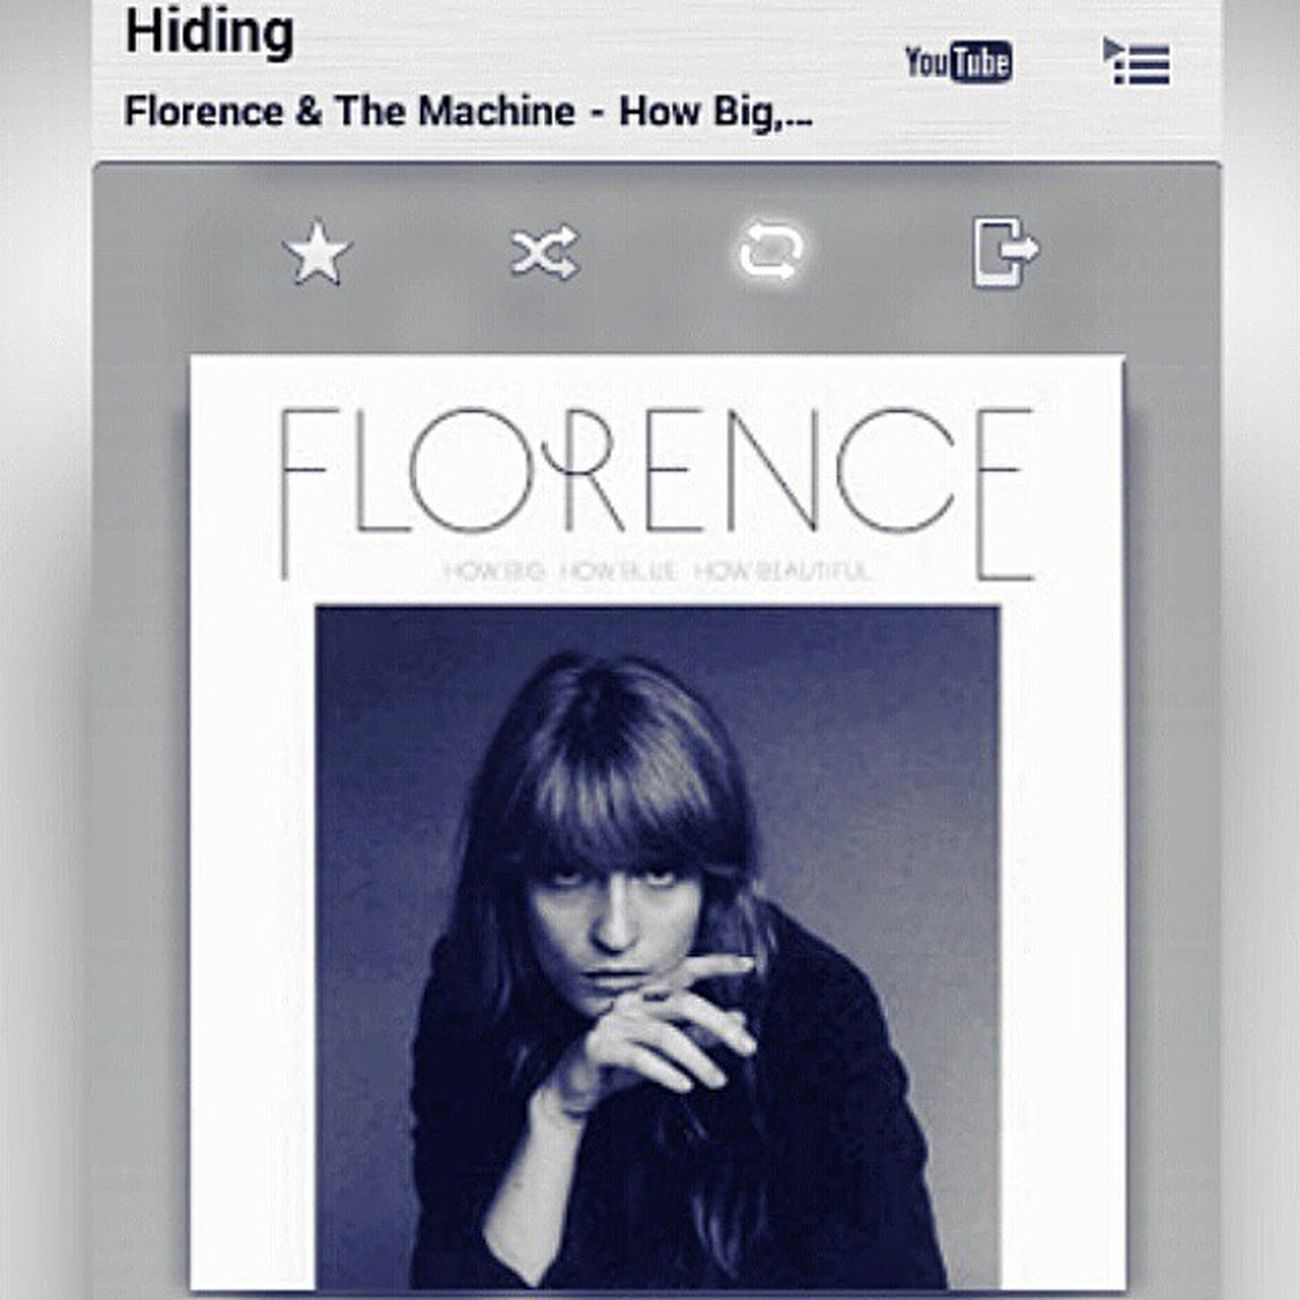 """I know there's a part of you that I just cannot reach, you don't have to let me in"" Florencewelch Florenceandthemachine Howbluehowbighowbeautiful Hiding deluxe amazing iloveit music"